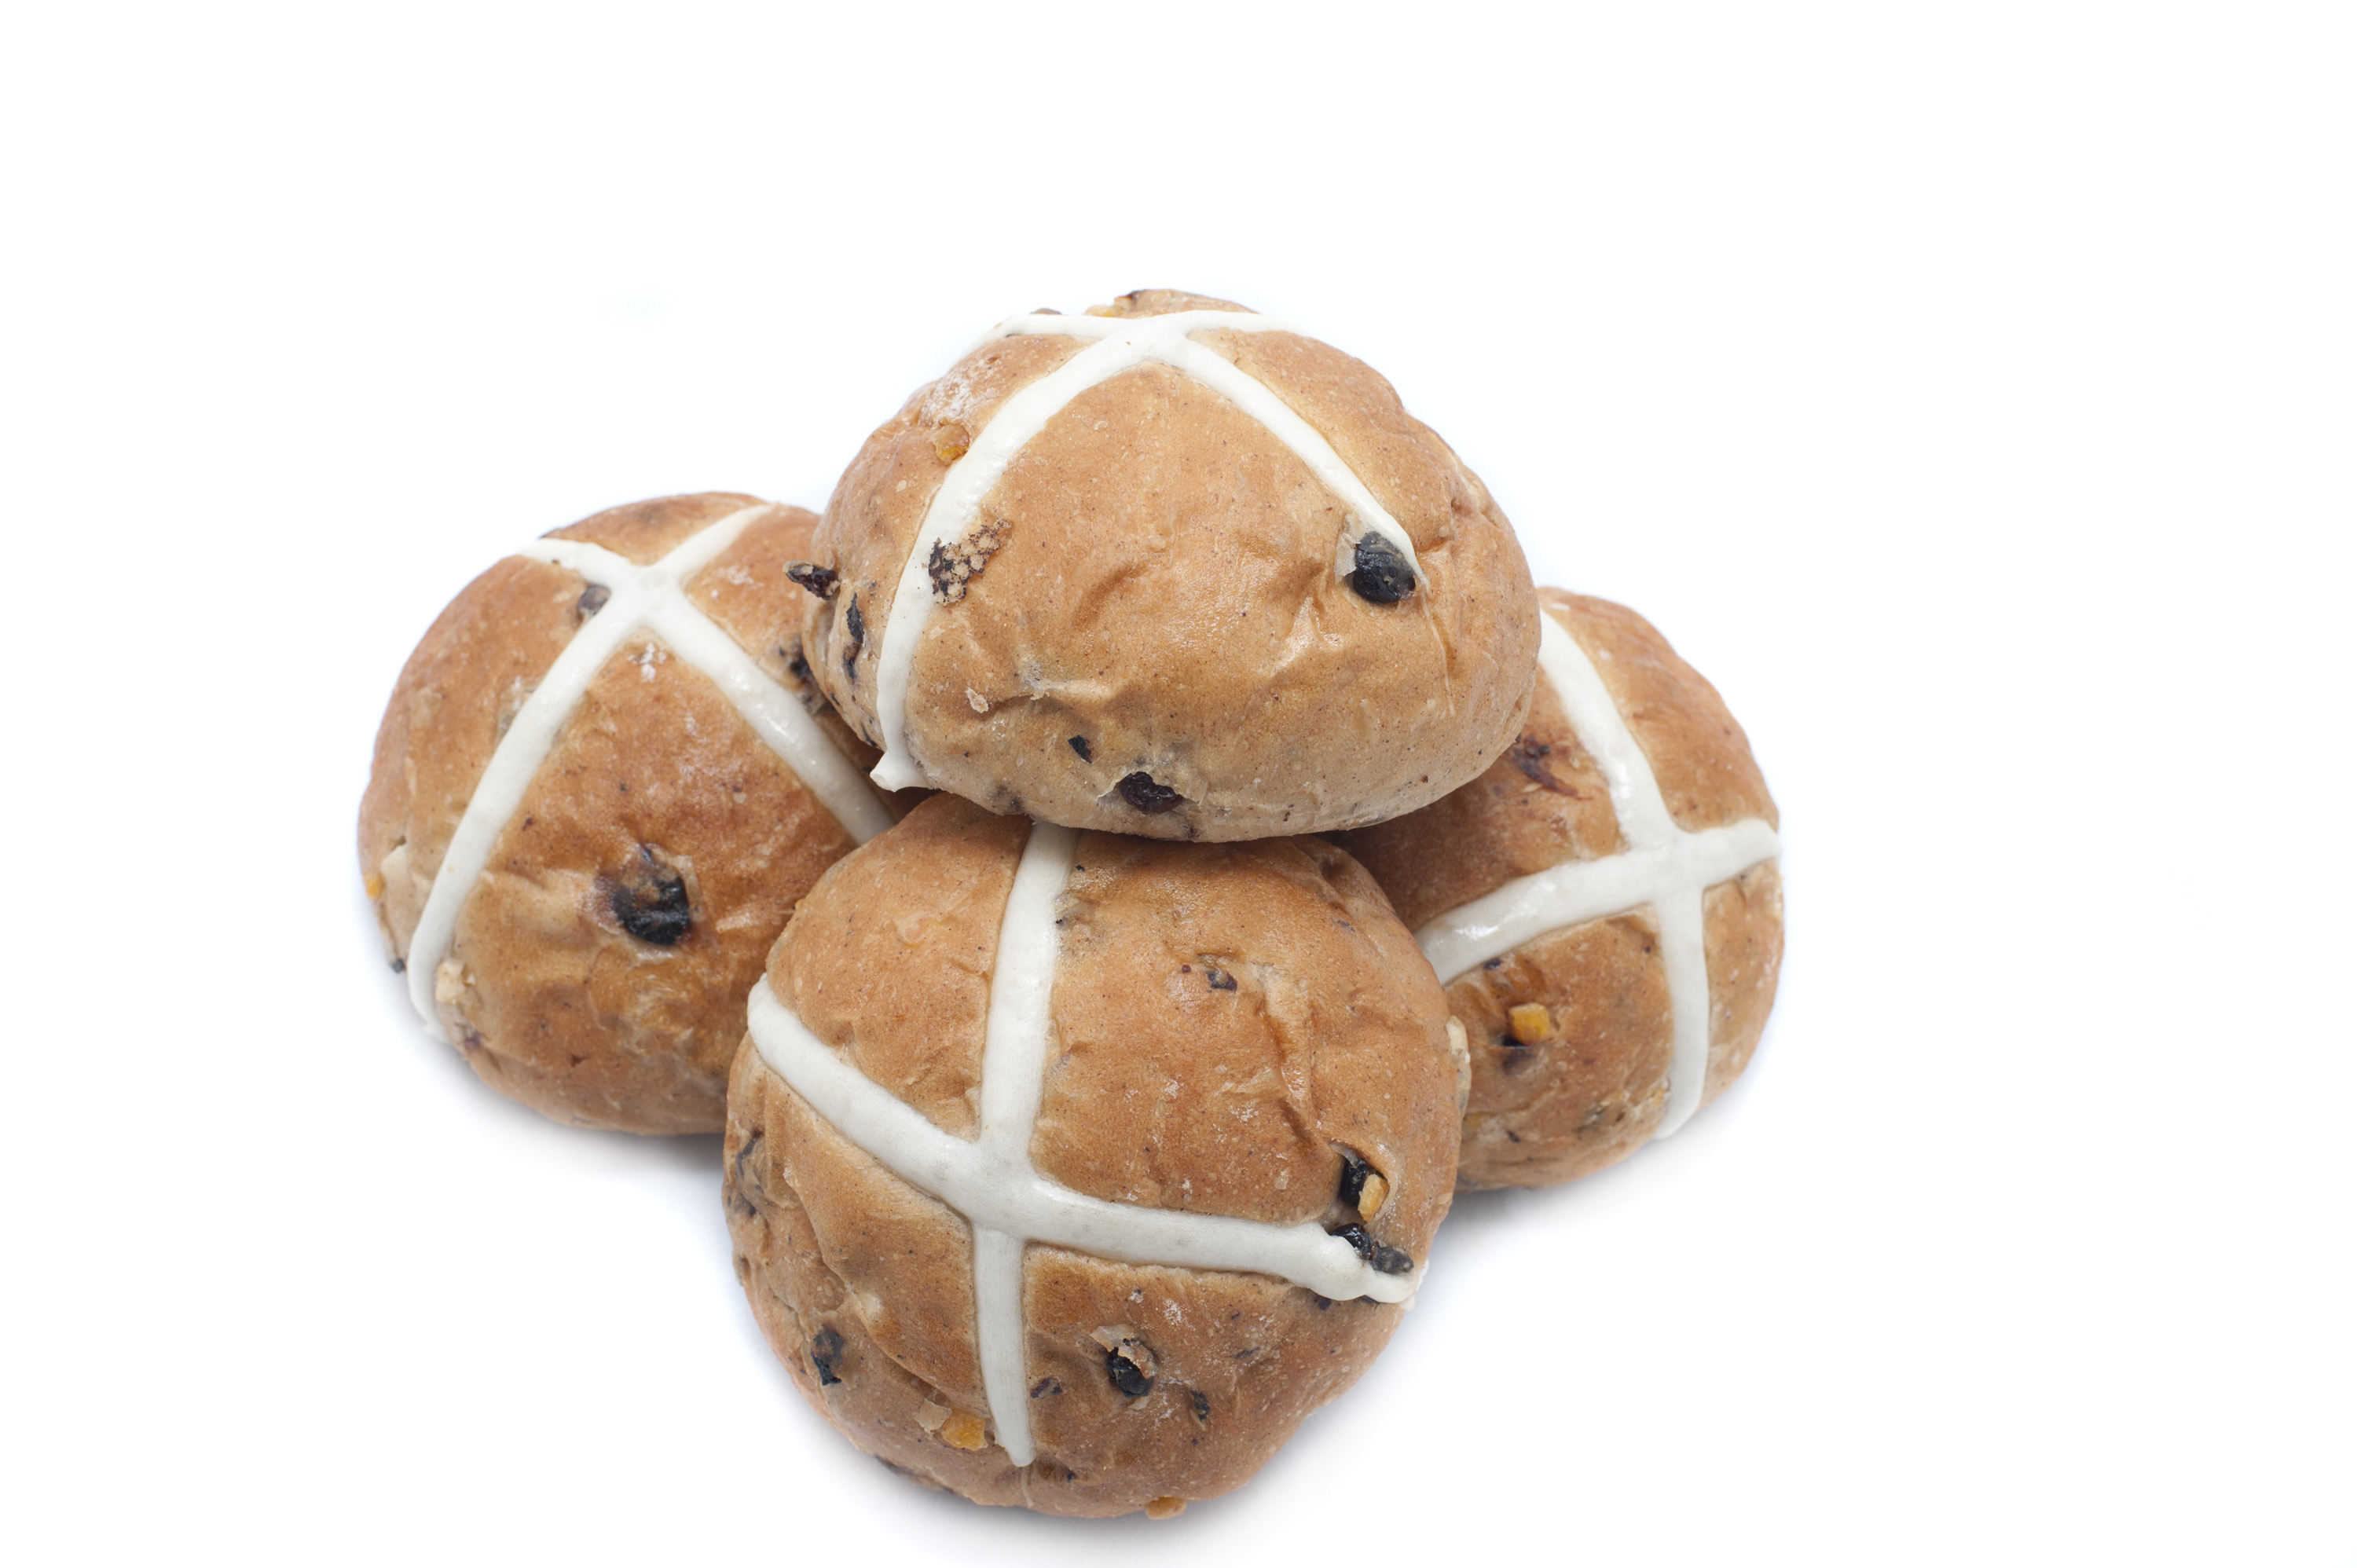 isolated_hot_cross_buns.jpg - Pile of delicious whole fresh Hot Cross Buns with spices and raisins to celebrate Easter on a white background